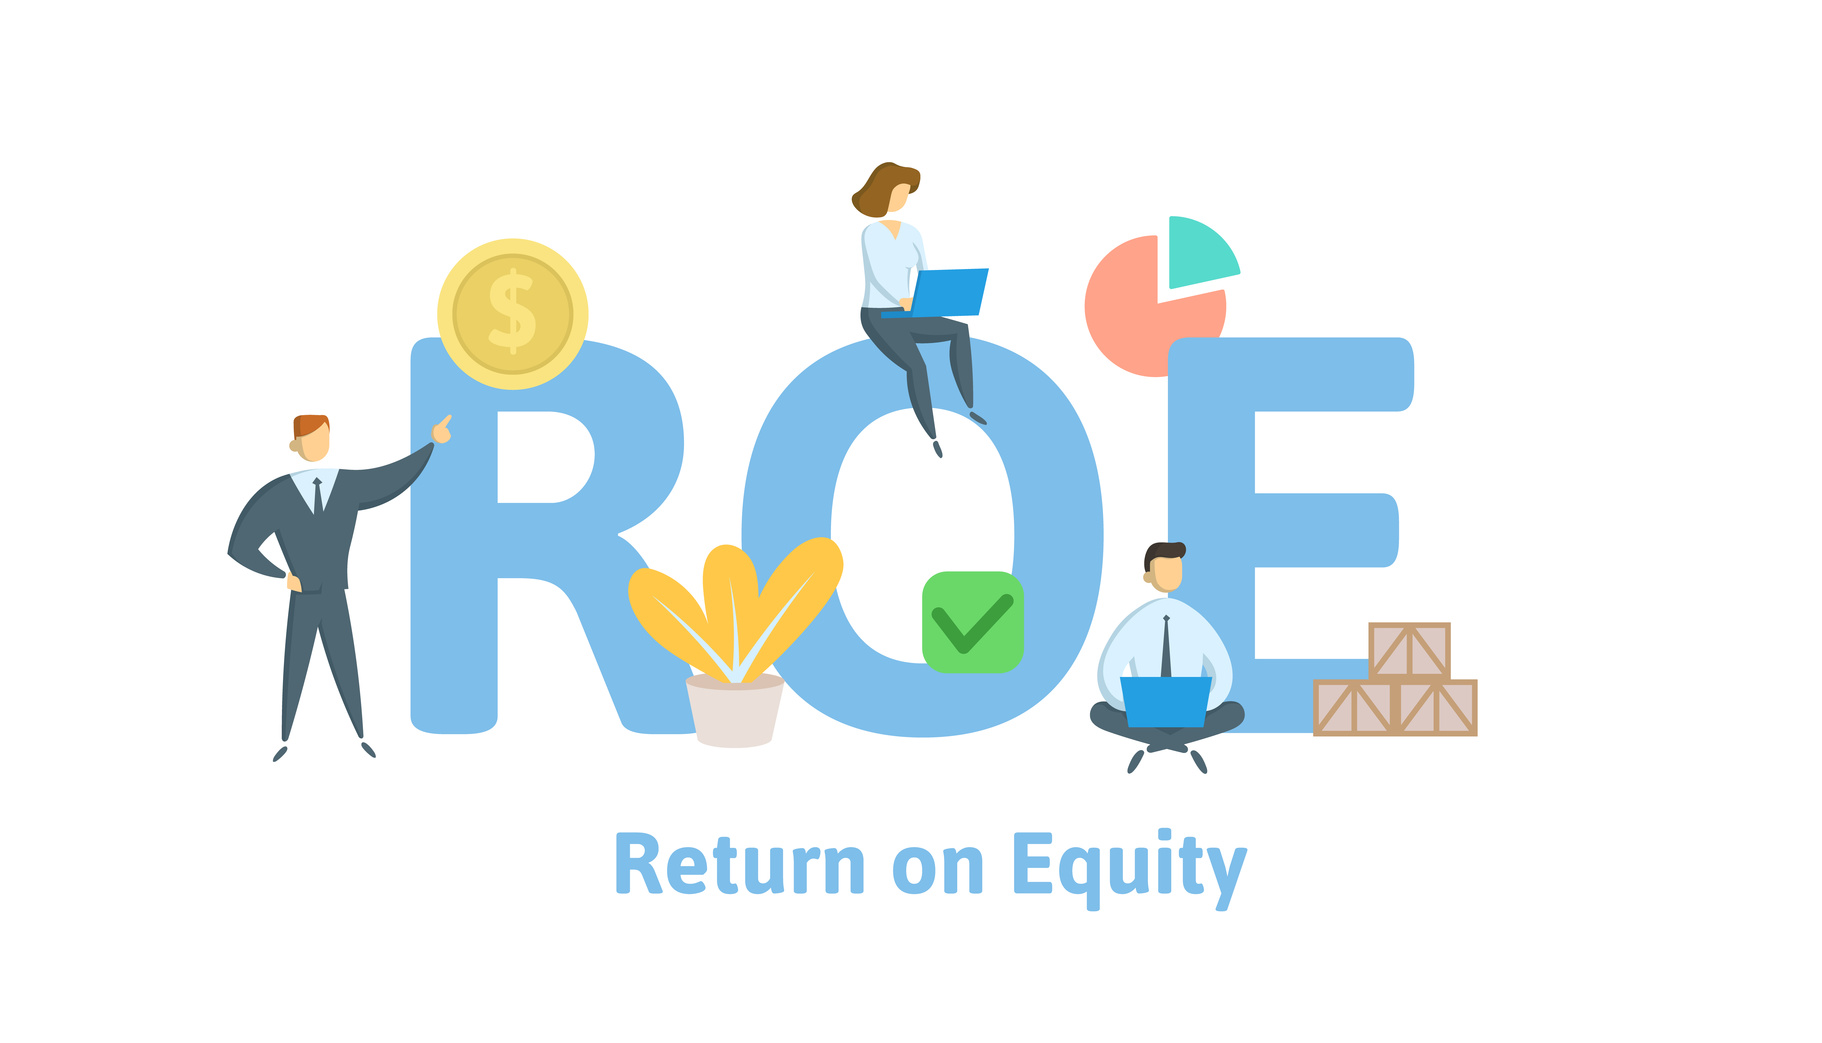 ROE, return on equity. Concept with keywords, letters and icons. Colored flat vector illustration. Isolated on white background.